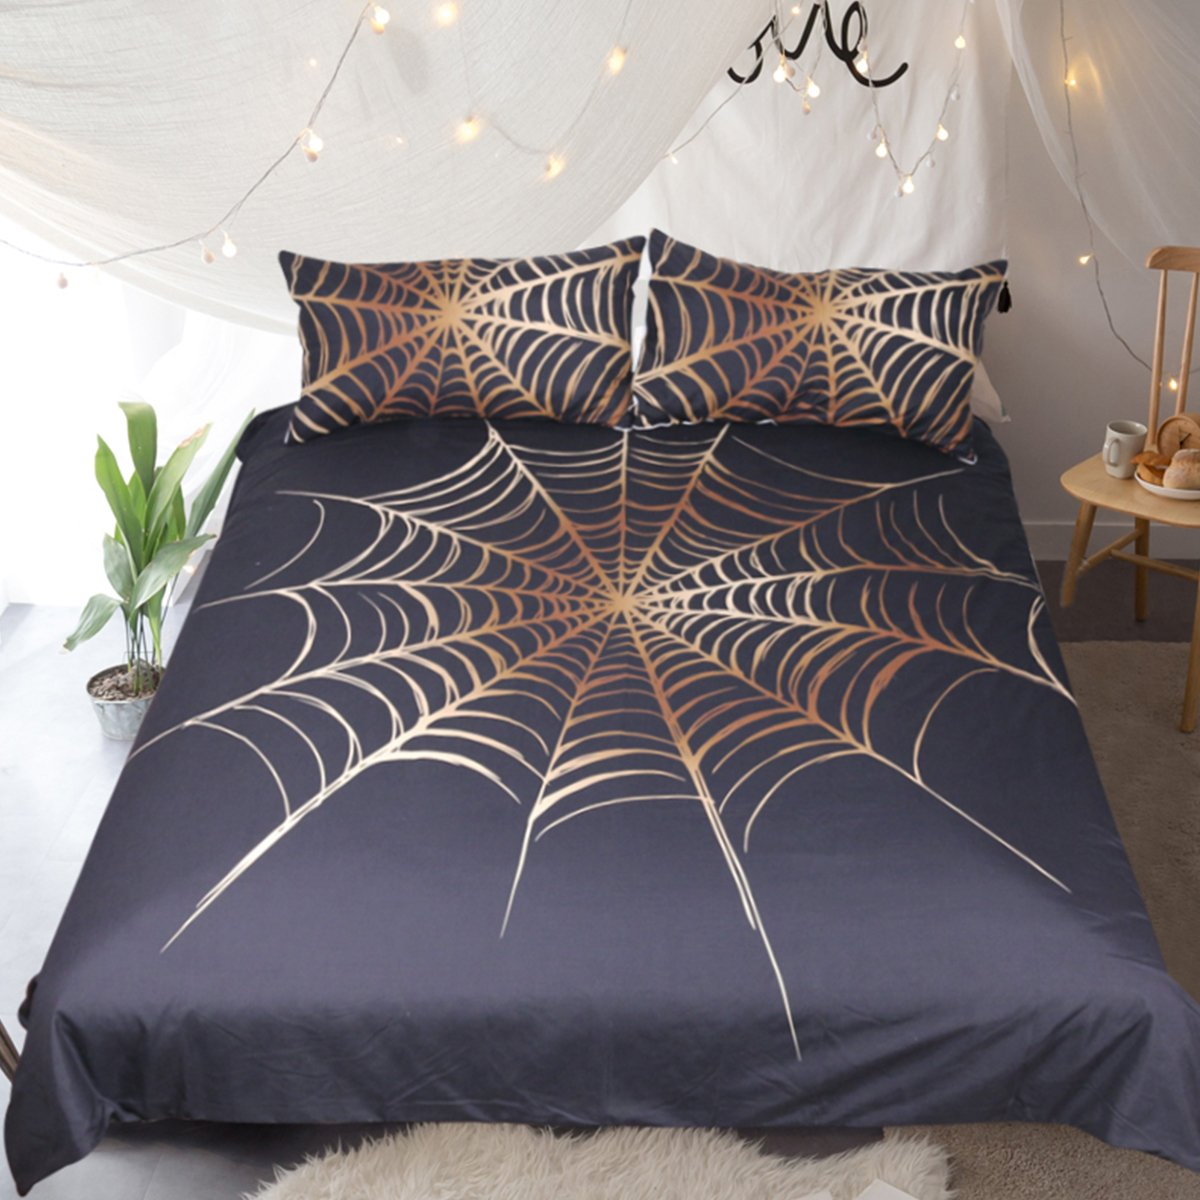 Sleepwish Black and Gold Spider Web Bedding Spooky Duvet Cover Ghost Bedding Quilt Duvet Cover Set Spiderweb Themed Gifts (Spider Web, King)